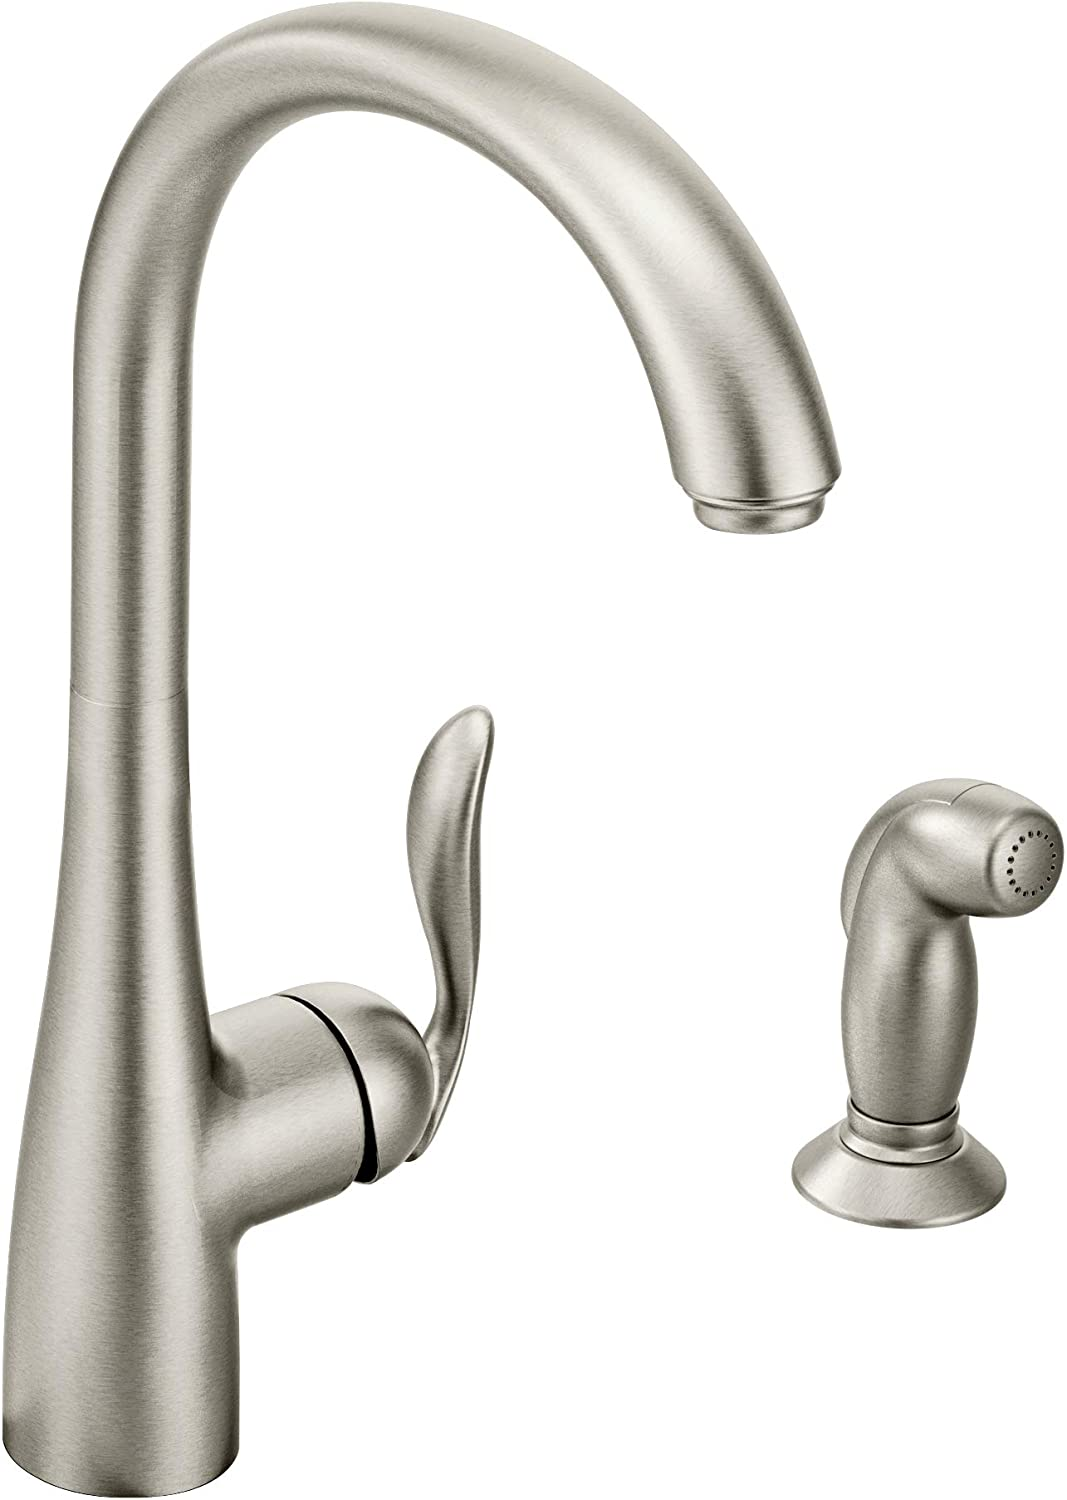 Moen 7790SRS Arbor One-Handle High-Arc Kitchen Faucet with Side Spray, Spot Resistant Stainless